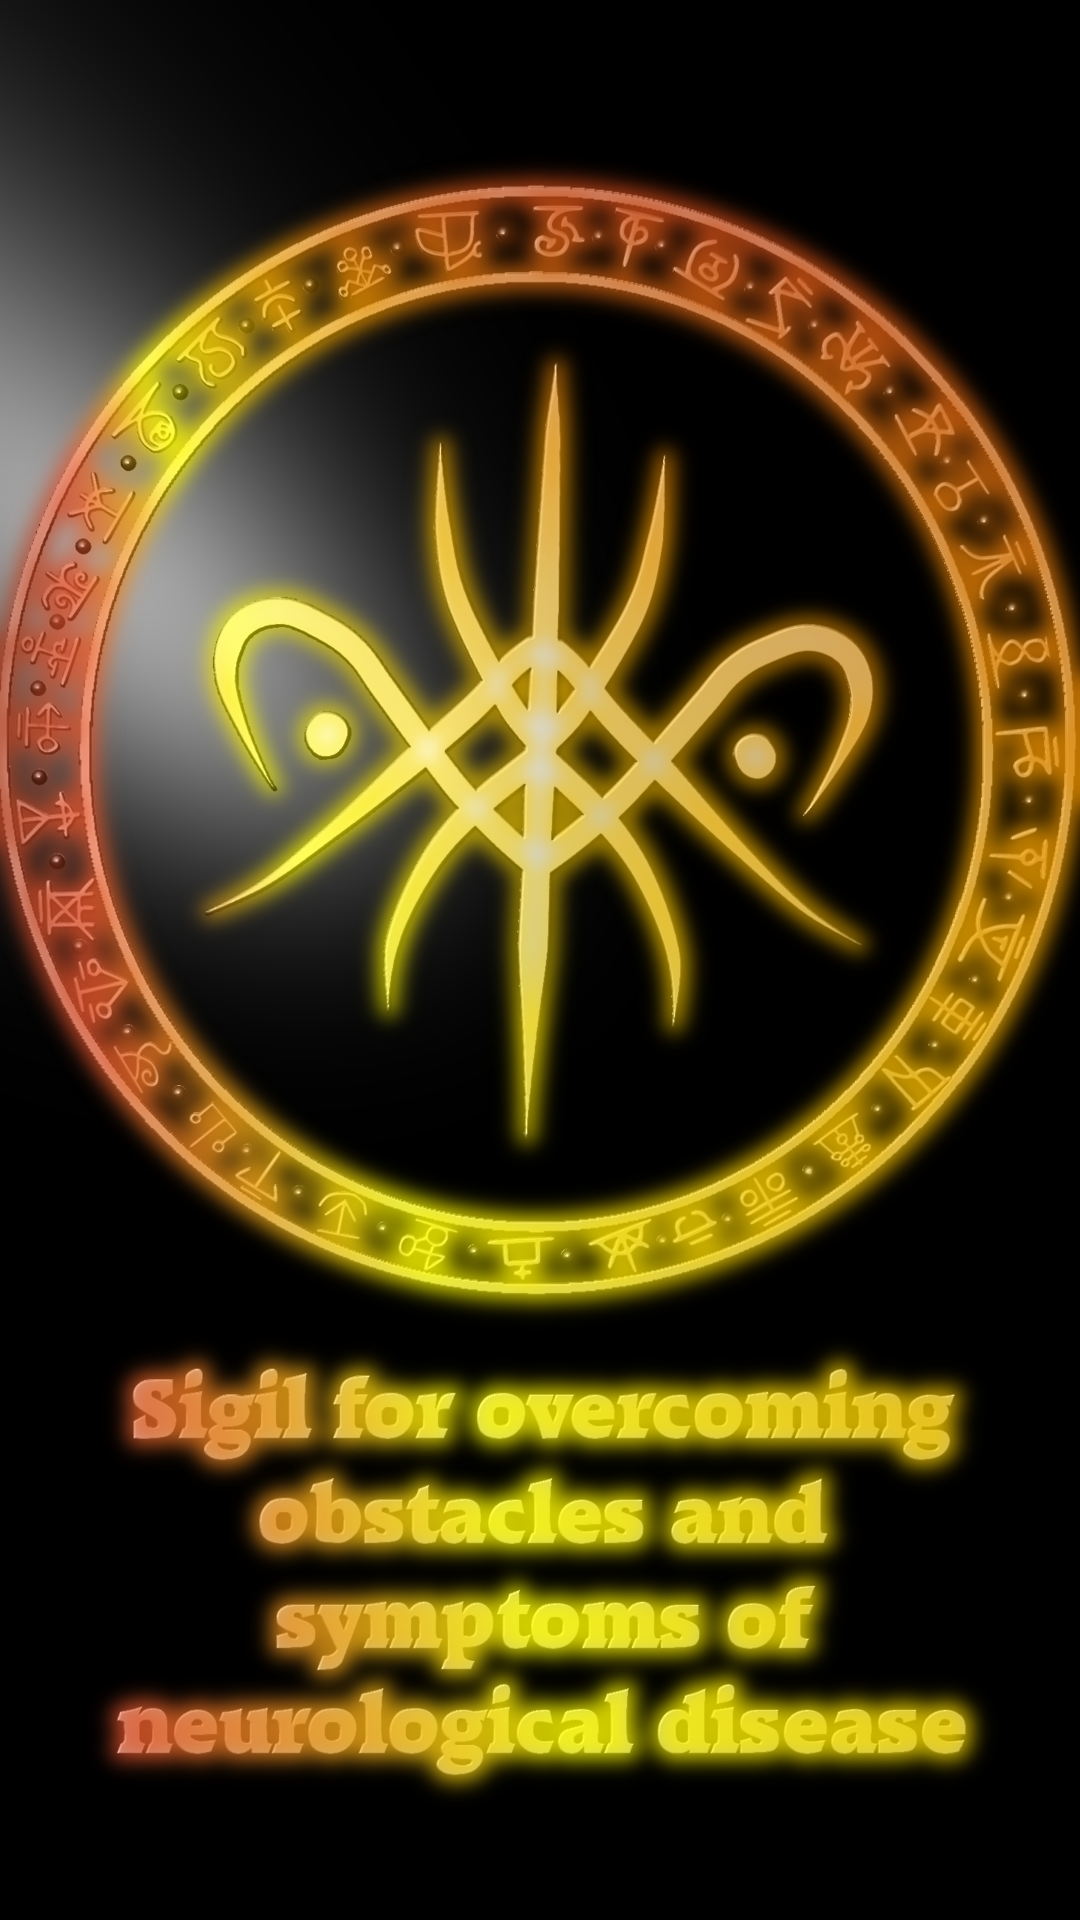 Sigil For Overcoming Obstacles And Symptoms Of Neurological Disease